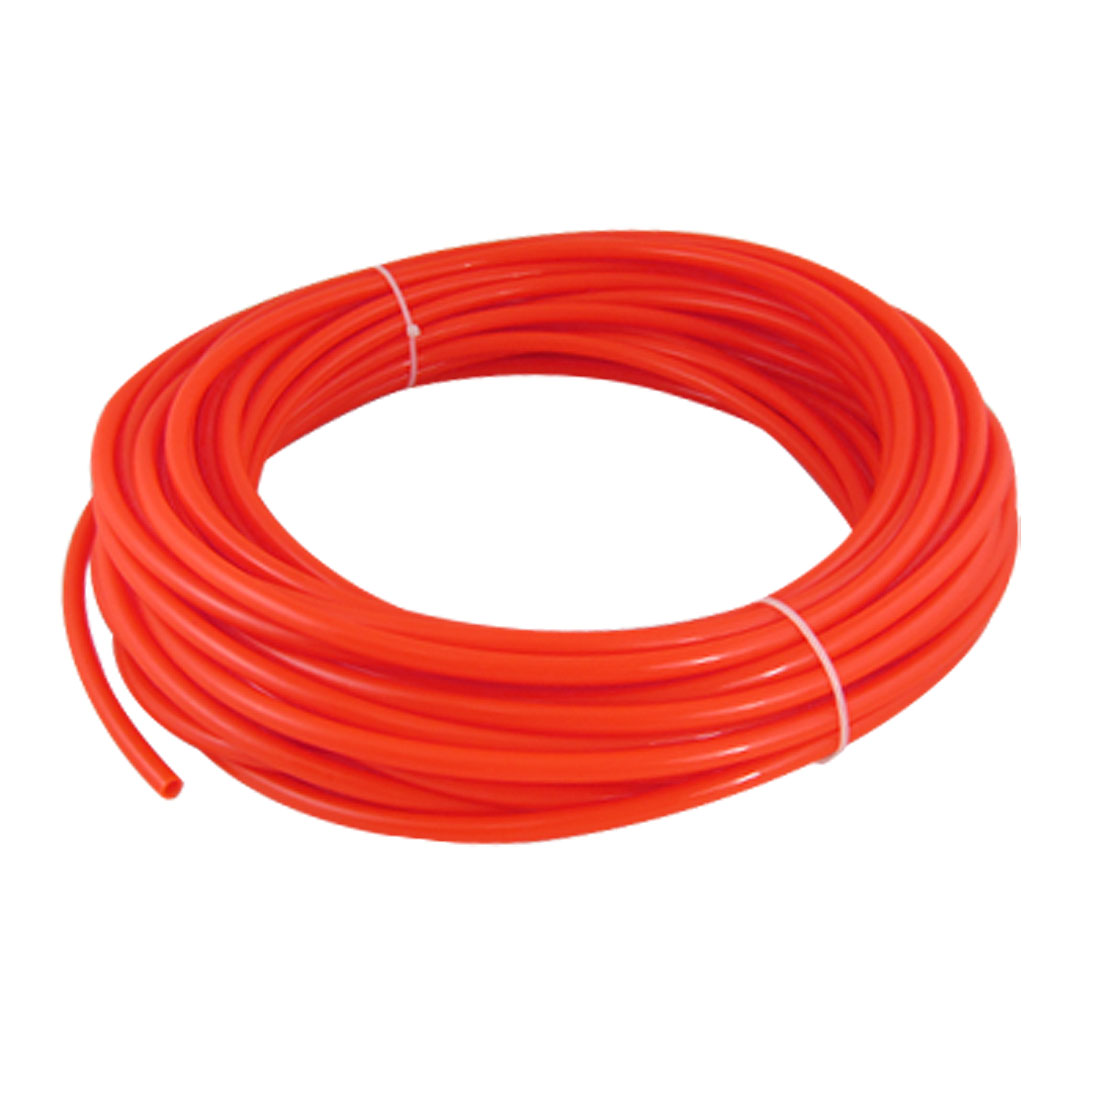 Orange Red 25M 82Ft 8mm OD 5mm ID Polyurethane PU Air Tube Hose